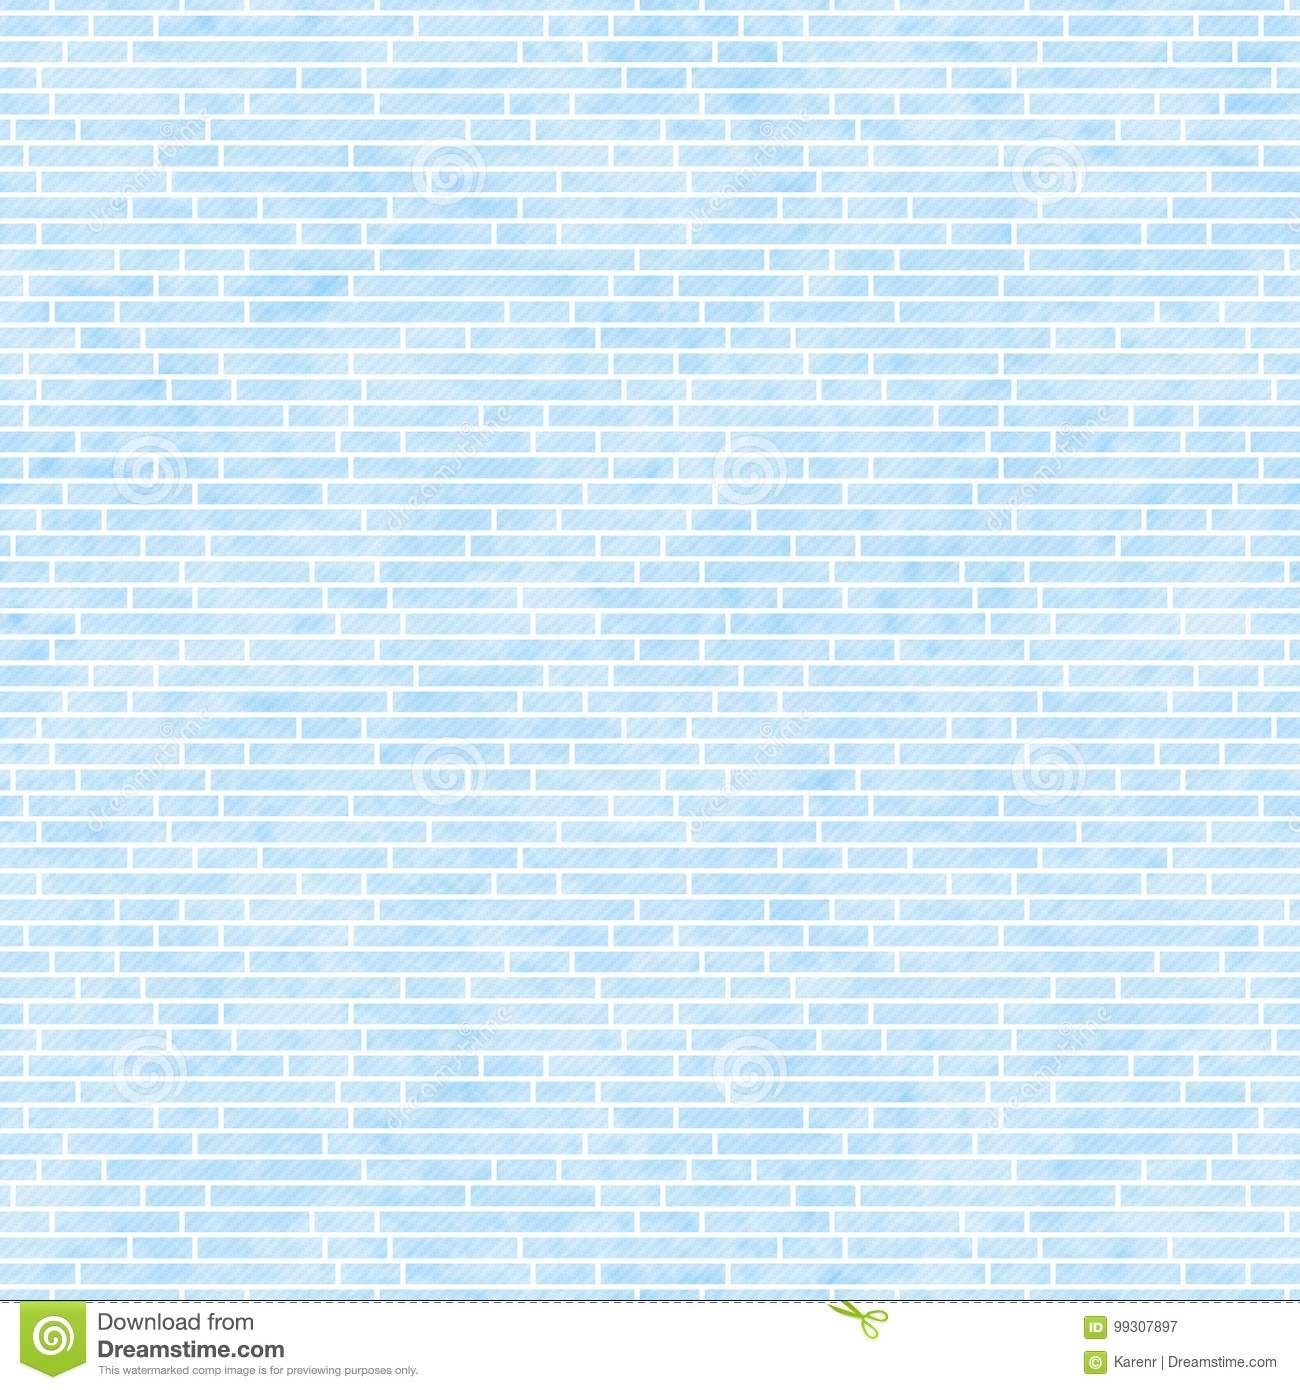 Blue Rectangle Slates Tile Pattern Repeat Background